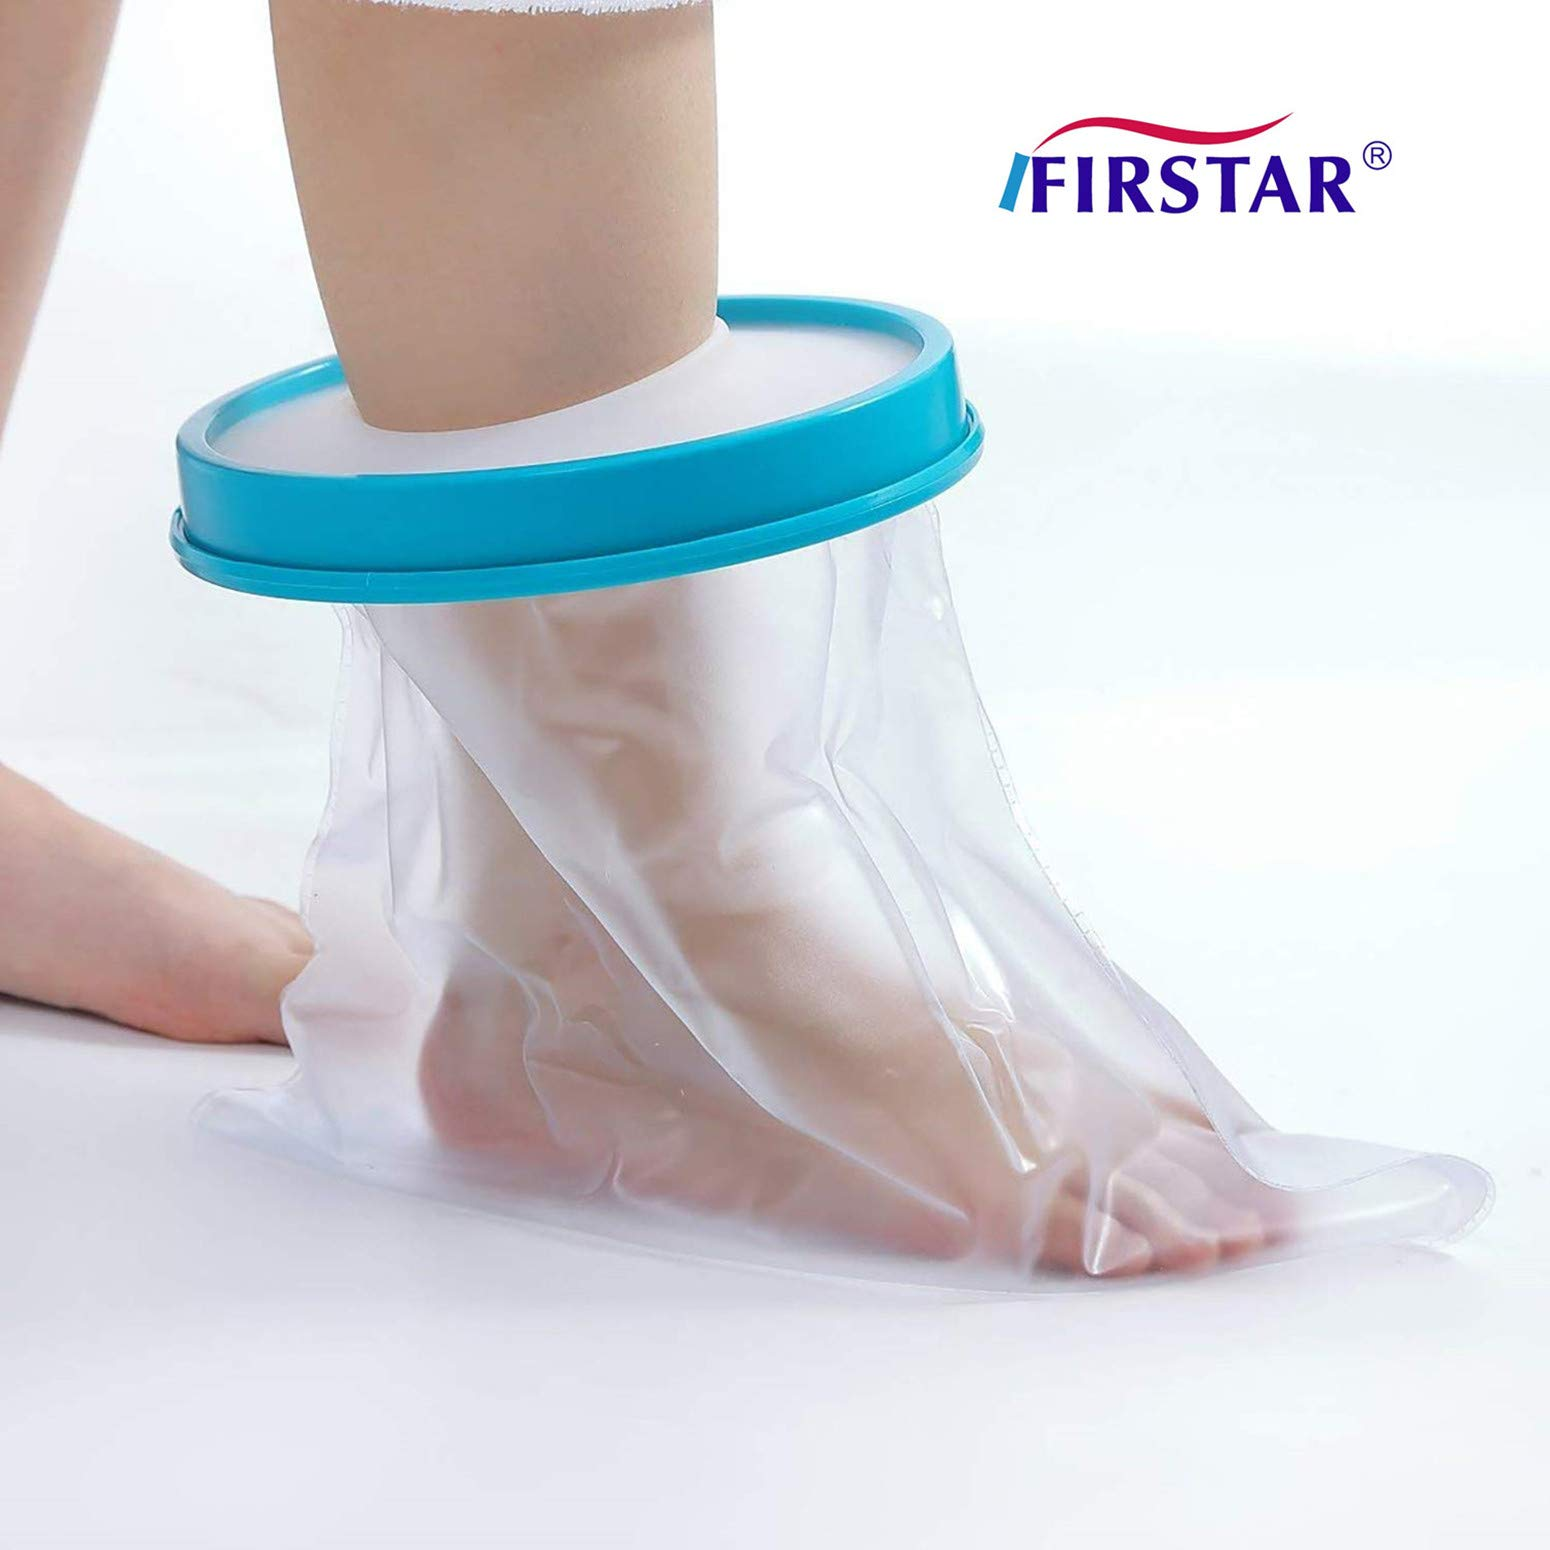 Adult Foot Cast Covers for Shower, Waterproof Shower Bandage and Cast Protector for Shower and Bath Watertight Protection to Broken Surgery Foot Ankle Wound and Burns 100% Reusable (12.9'' 13.5'' 7'') by FIRSTAR